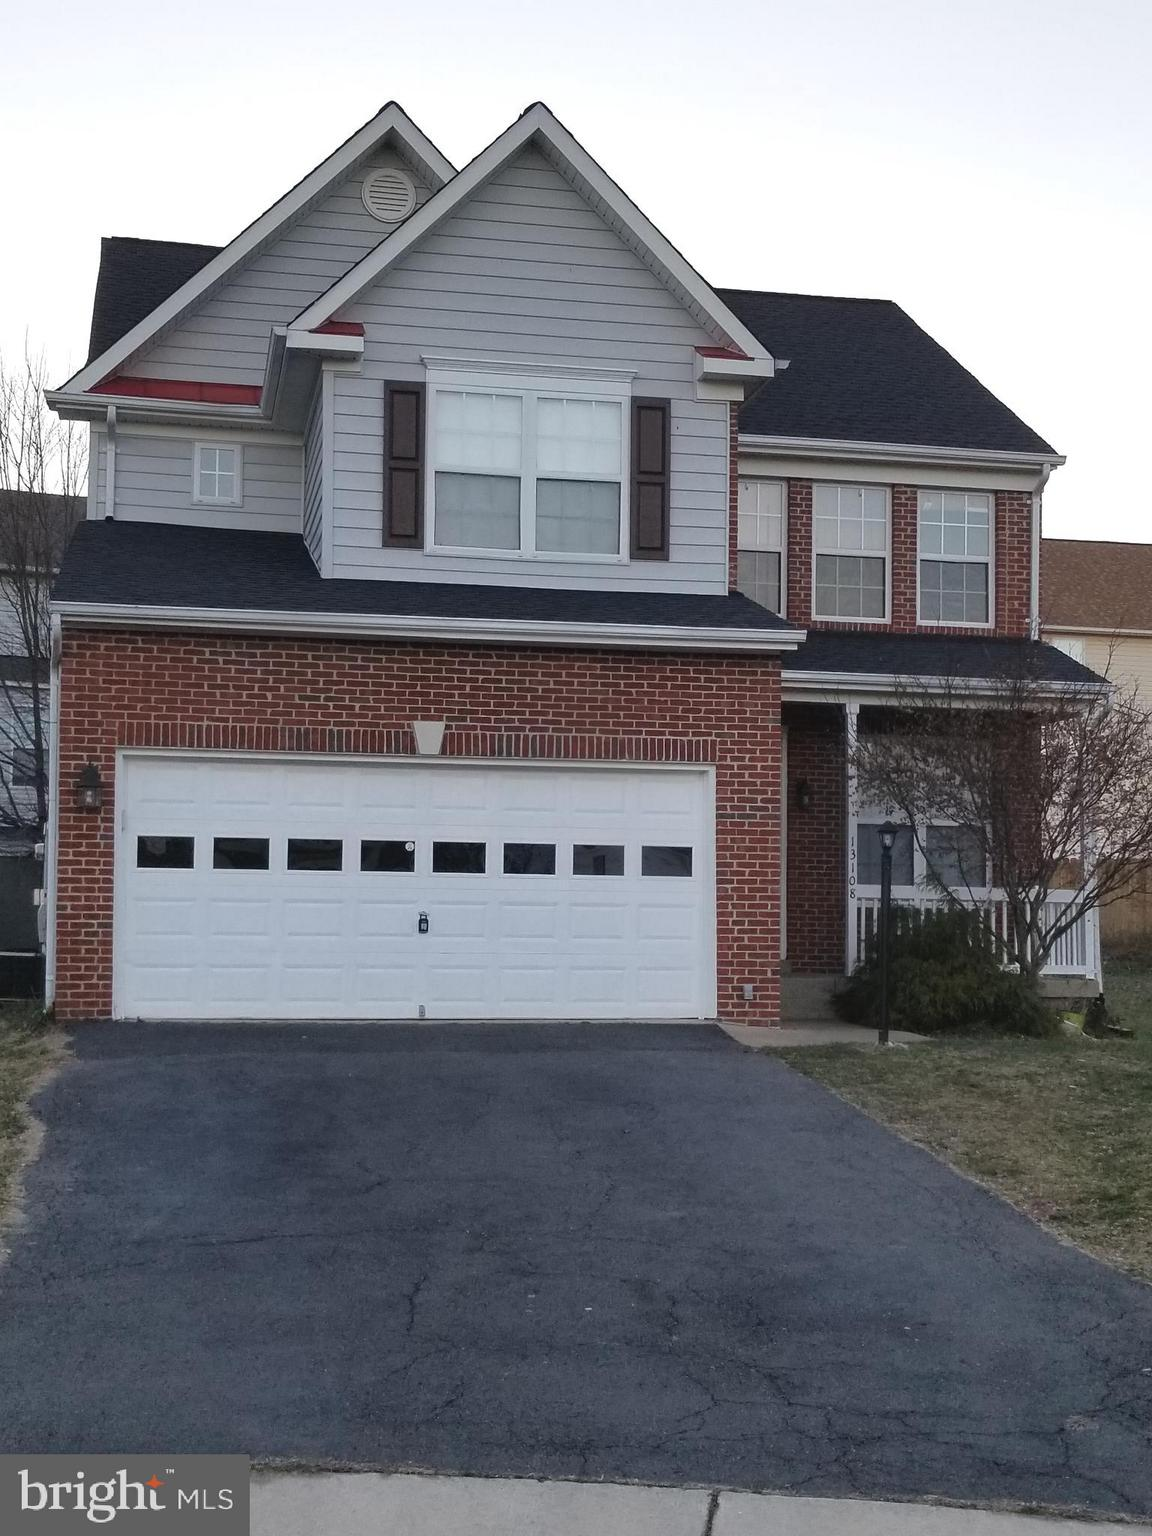 Back due to buyer financing fell thru pending release. Light filled open floor plan upper levels.4BR with 2 Full Bath in upstairs a nice brick front Colonial with walkup basement. Main level has Living, Dining, Kitchen with space for table, family room with Fire place and half bath. This home has a rec. room full bath and other two rooms in basement. Master bath with Large soaking tub and separate shower, 2 car garages and front porch. This is a clean home with large backyard waiting for you! Owner is Real Estate Agent.New roof, New appliances, new garnet countertop, few years old master bath. Dual zone HVAC one unit is new.